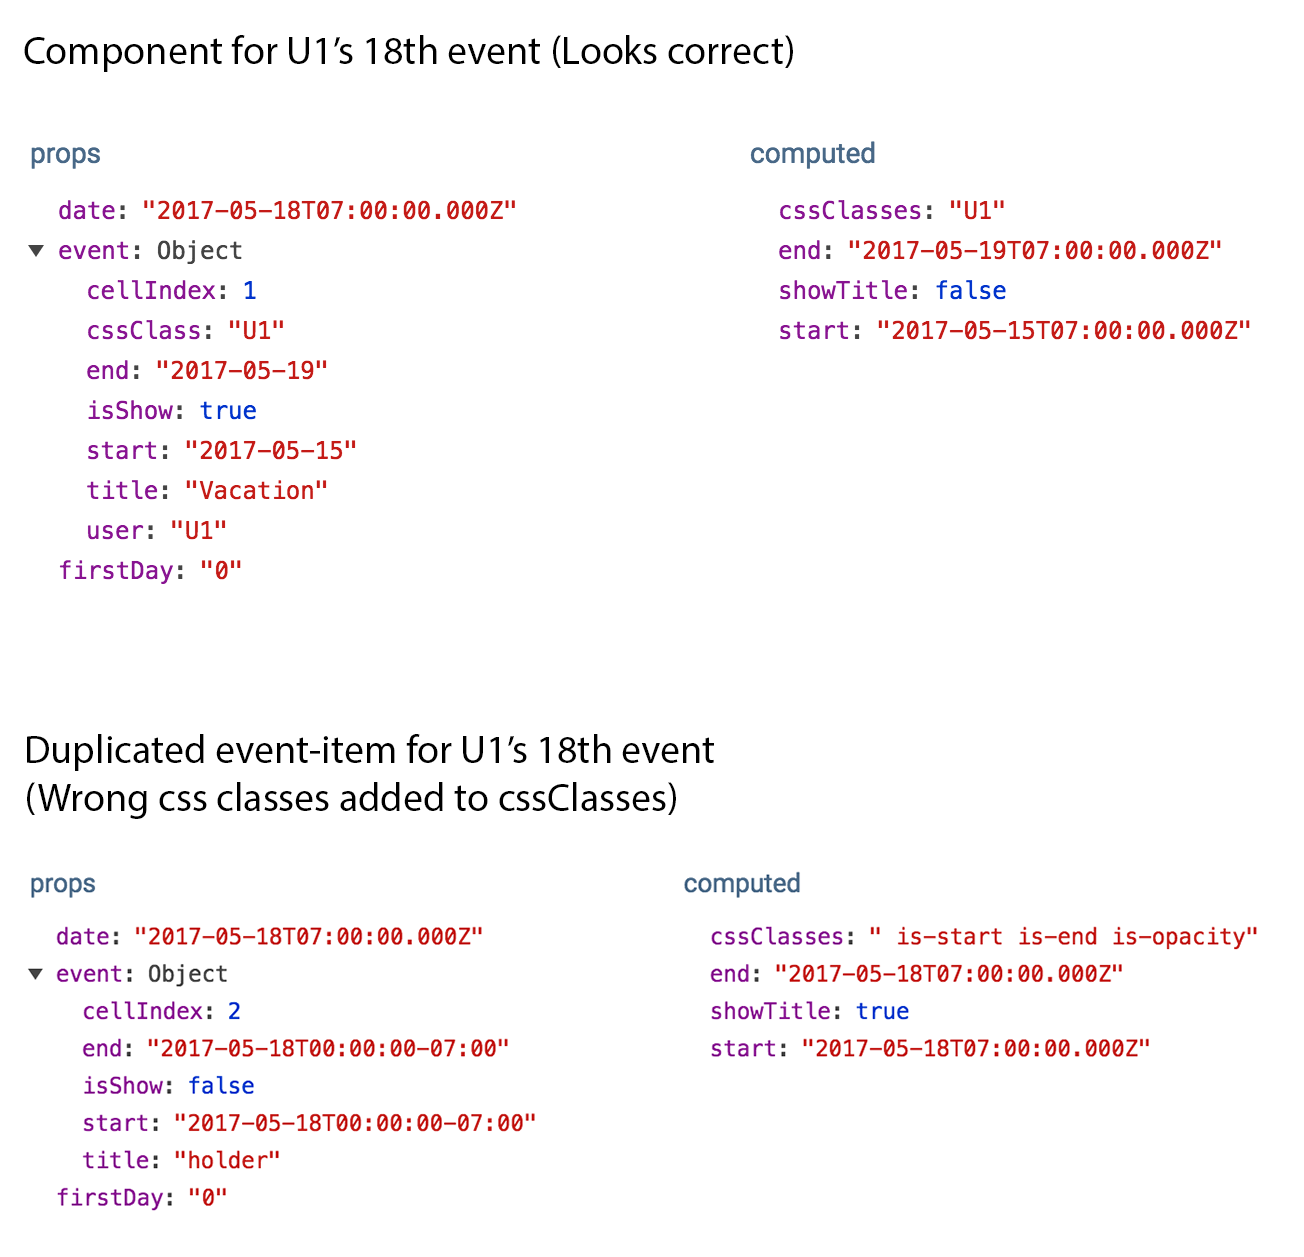 duplicate components